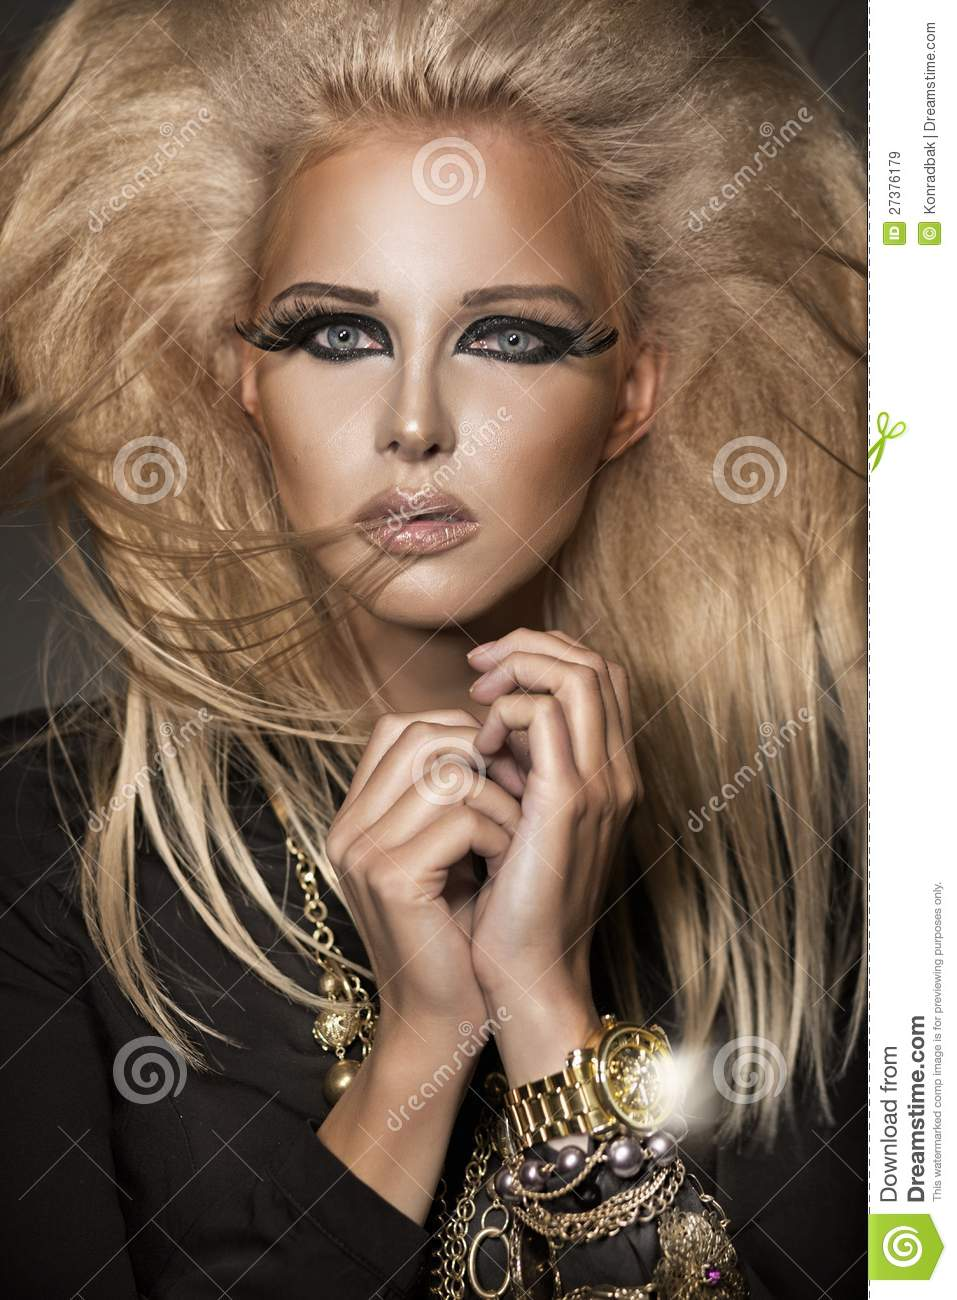 Some Fascinating Teenage Girl Bedroom Ideas: Young Woman With Interesting Make-up Royalty Free Stock